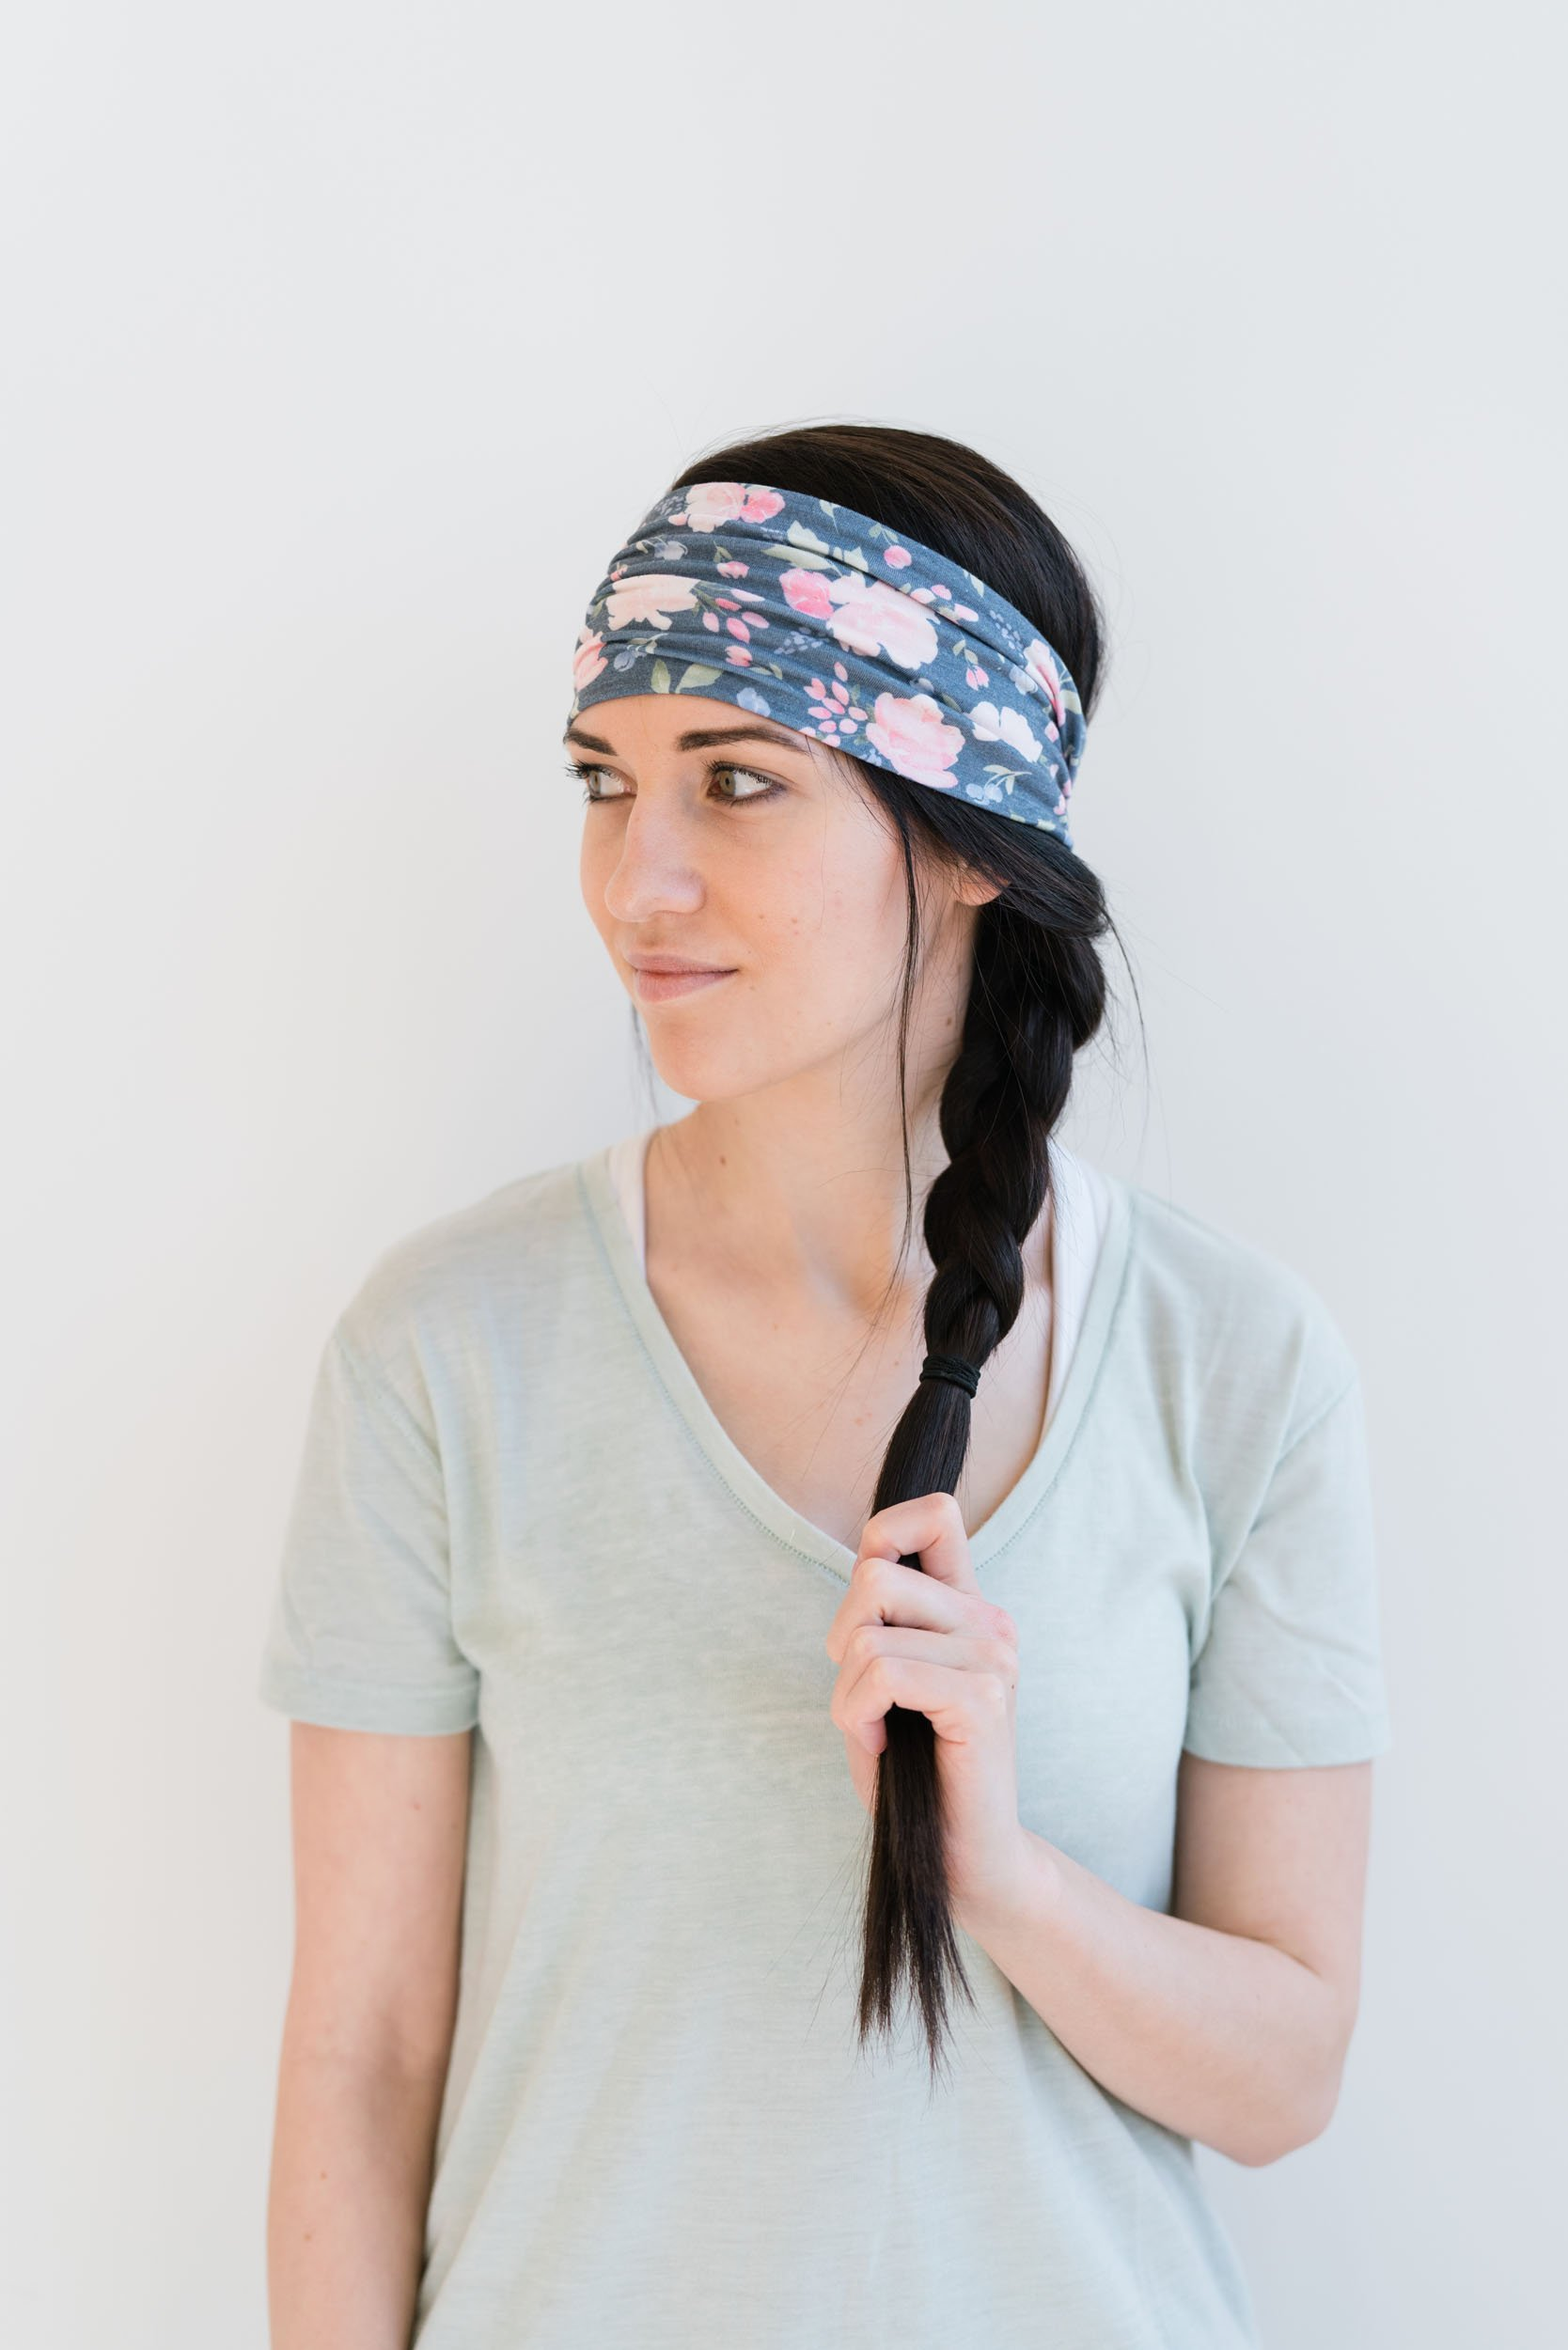 Maven Thread Women's Headband Yoga Running Exercise Sports Workout Athletic Gym Wide Sweat Wicking Stretchy No Slip 2 Pack Set Pink and Navy Floral ENERGY by by Maven Thread (Image #2)